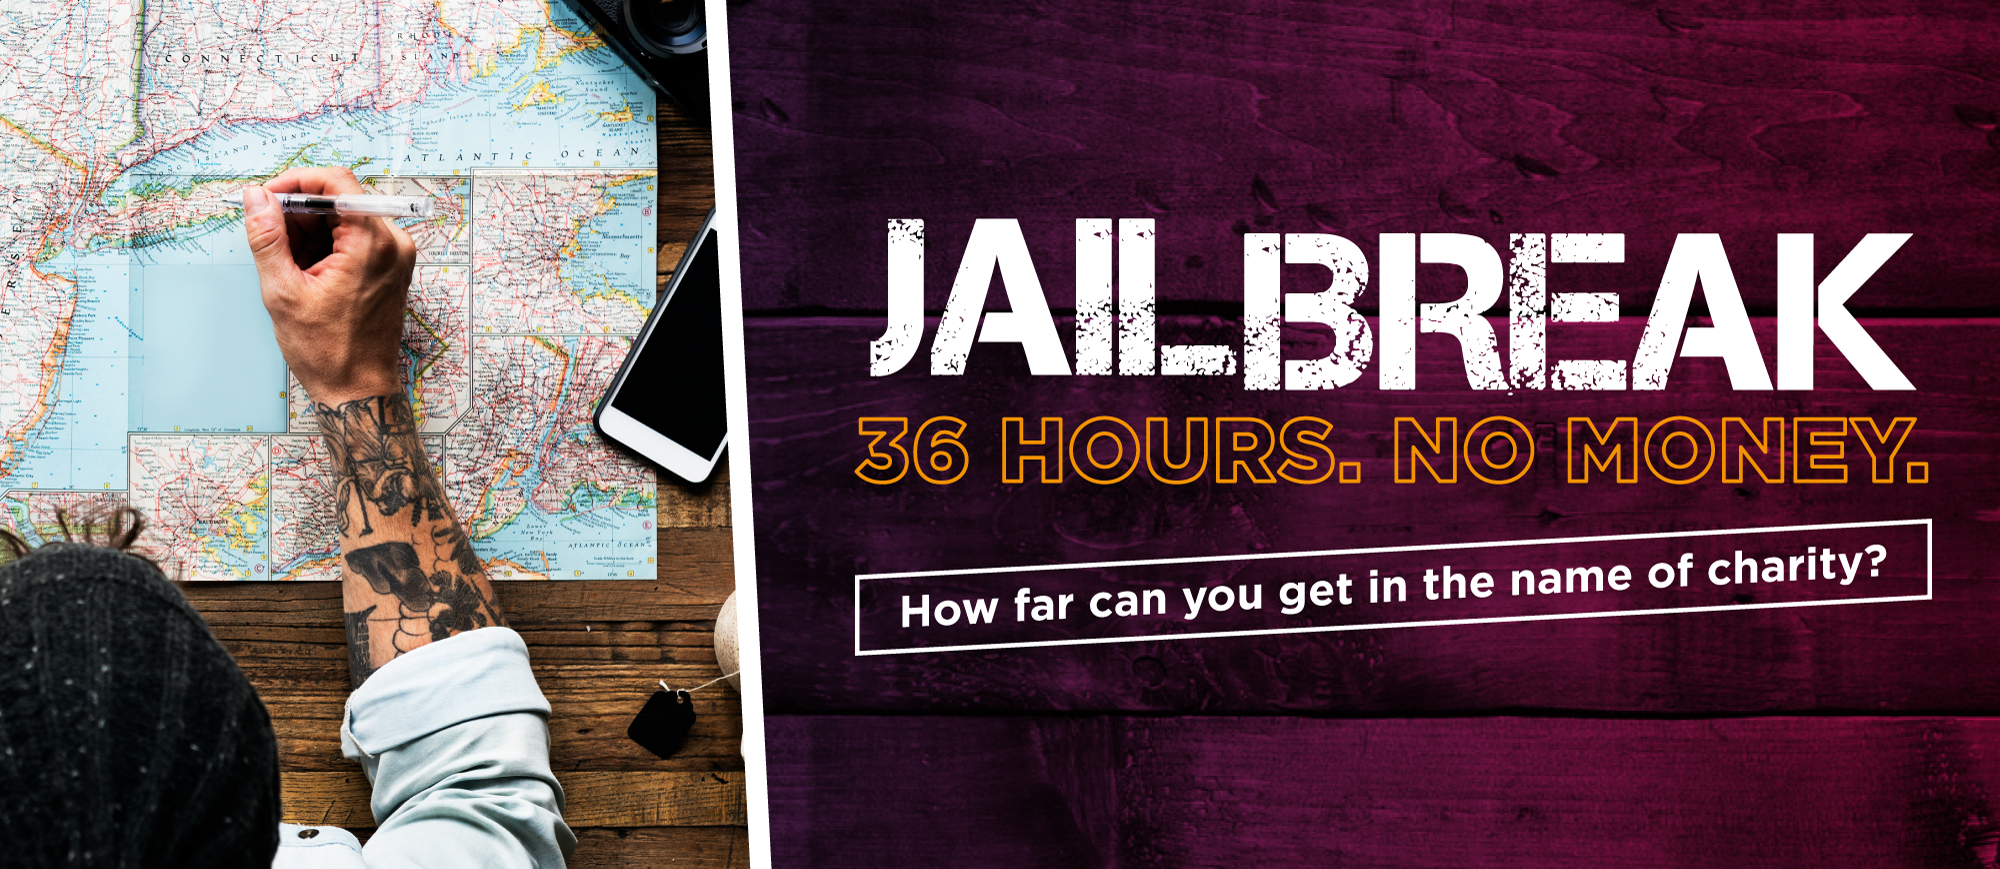 Jailbreak 36 hours no money. How far can you get in the name of charity?